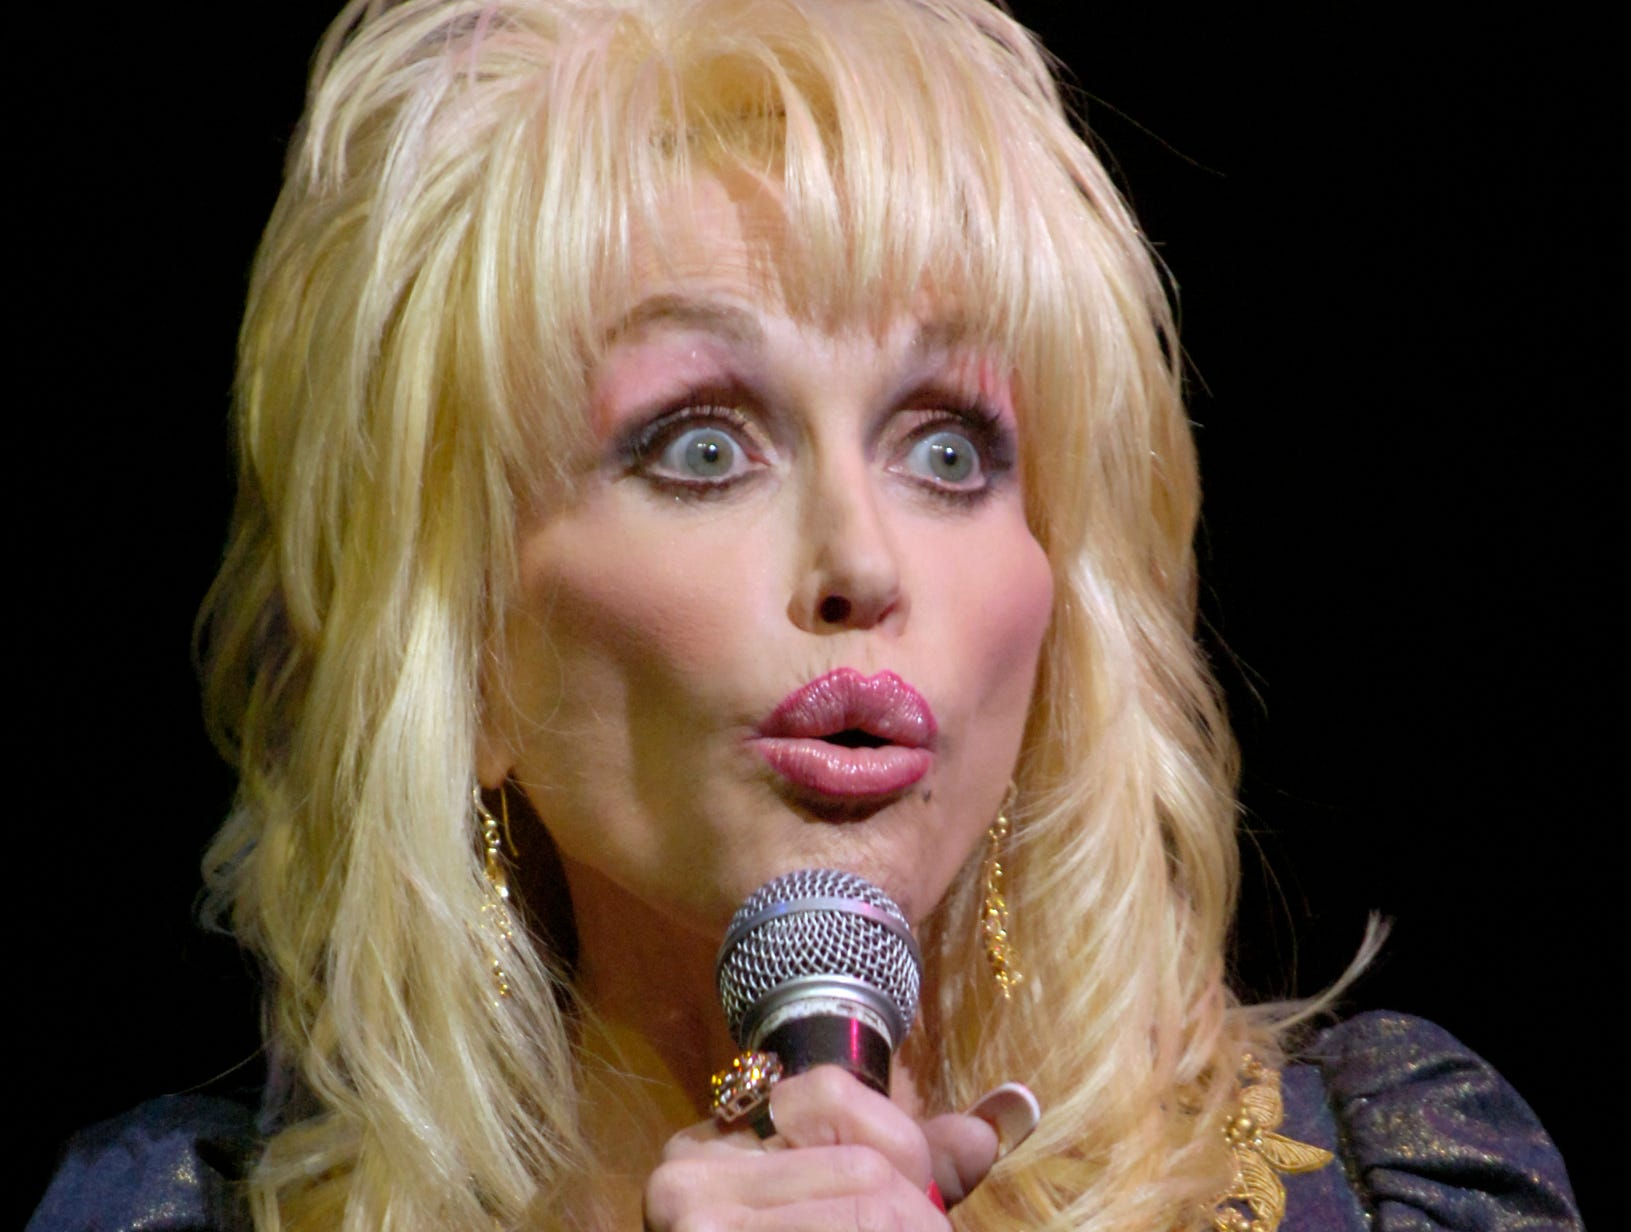 Dolly Parton at Dollywood on Friday making several announcements including the winner of her cookbook contest which is having a cookout for 100 people including Dolly herself.